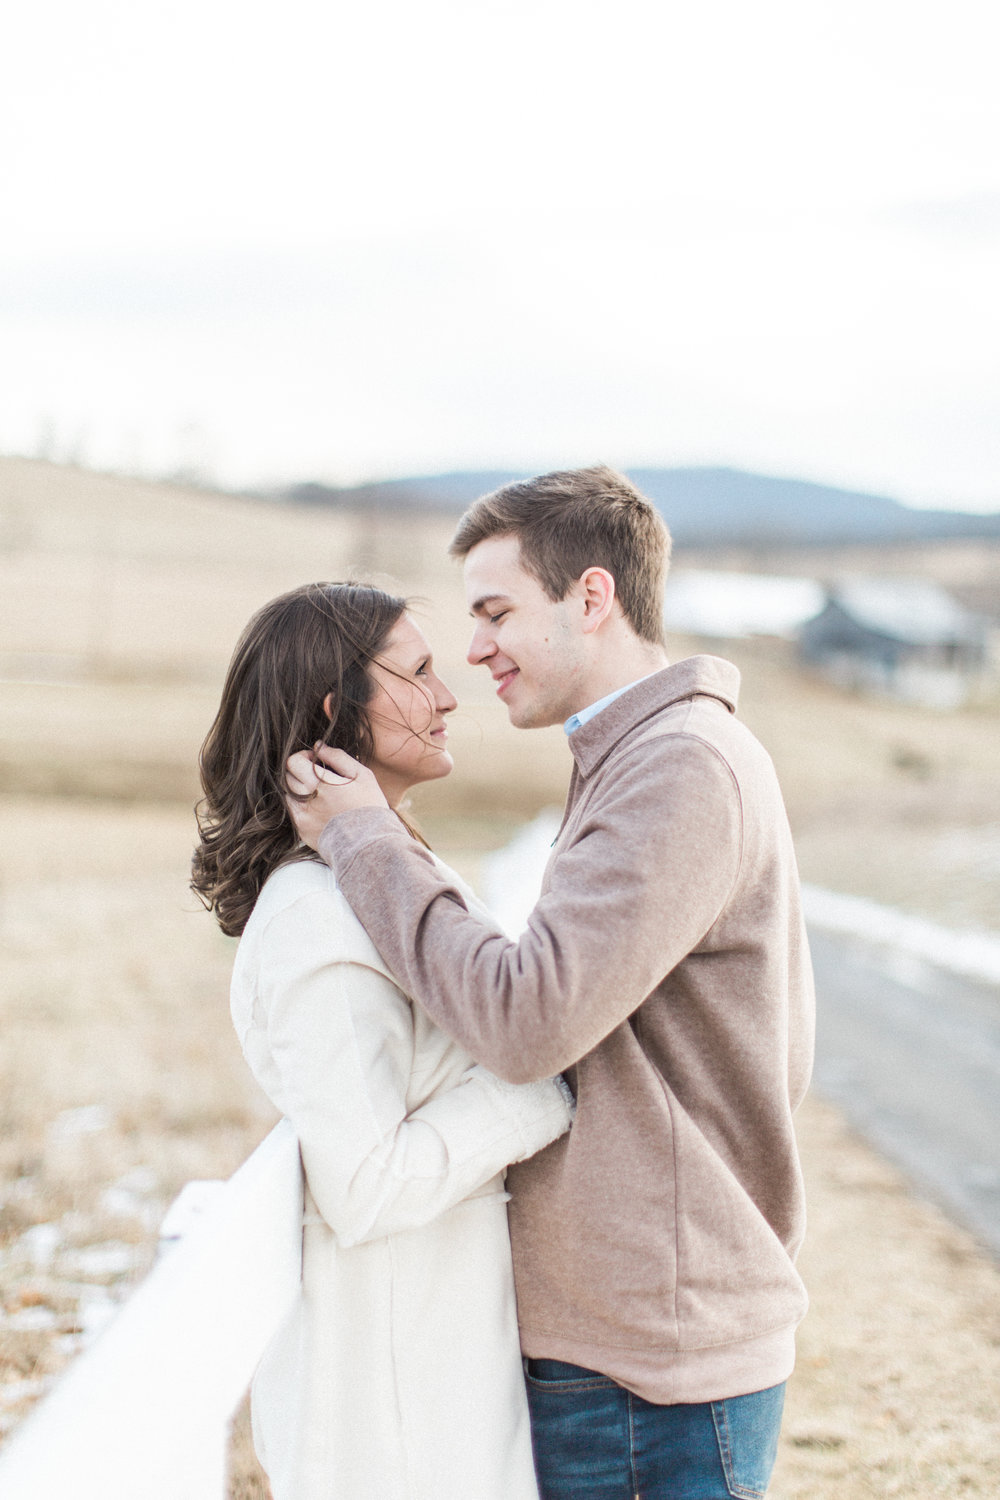 Abigail_Jill_Photography_Maryland_Engagement_Farm_Emily_Justin151.jpg